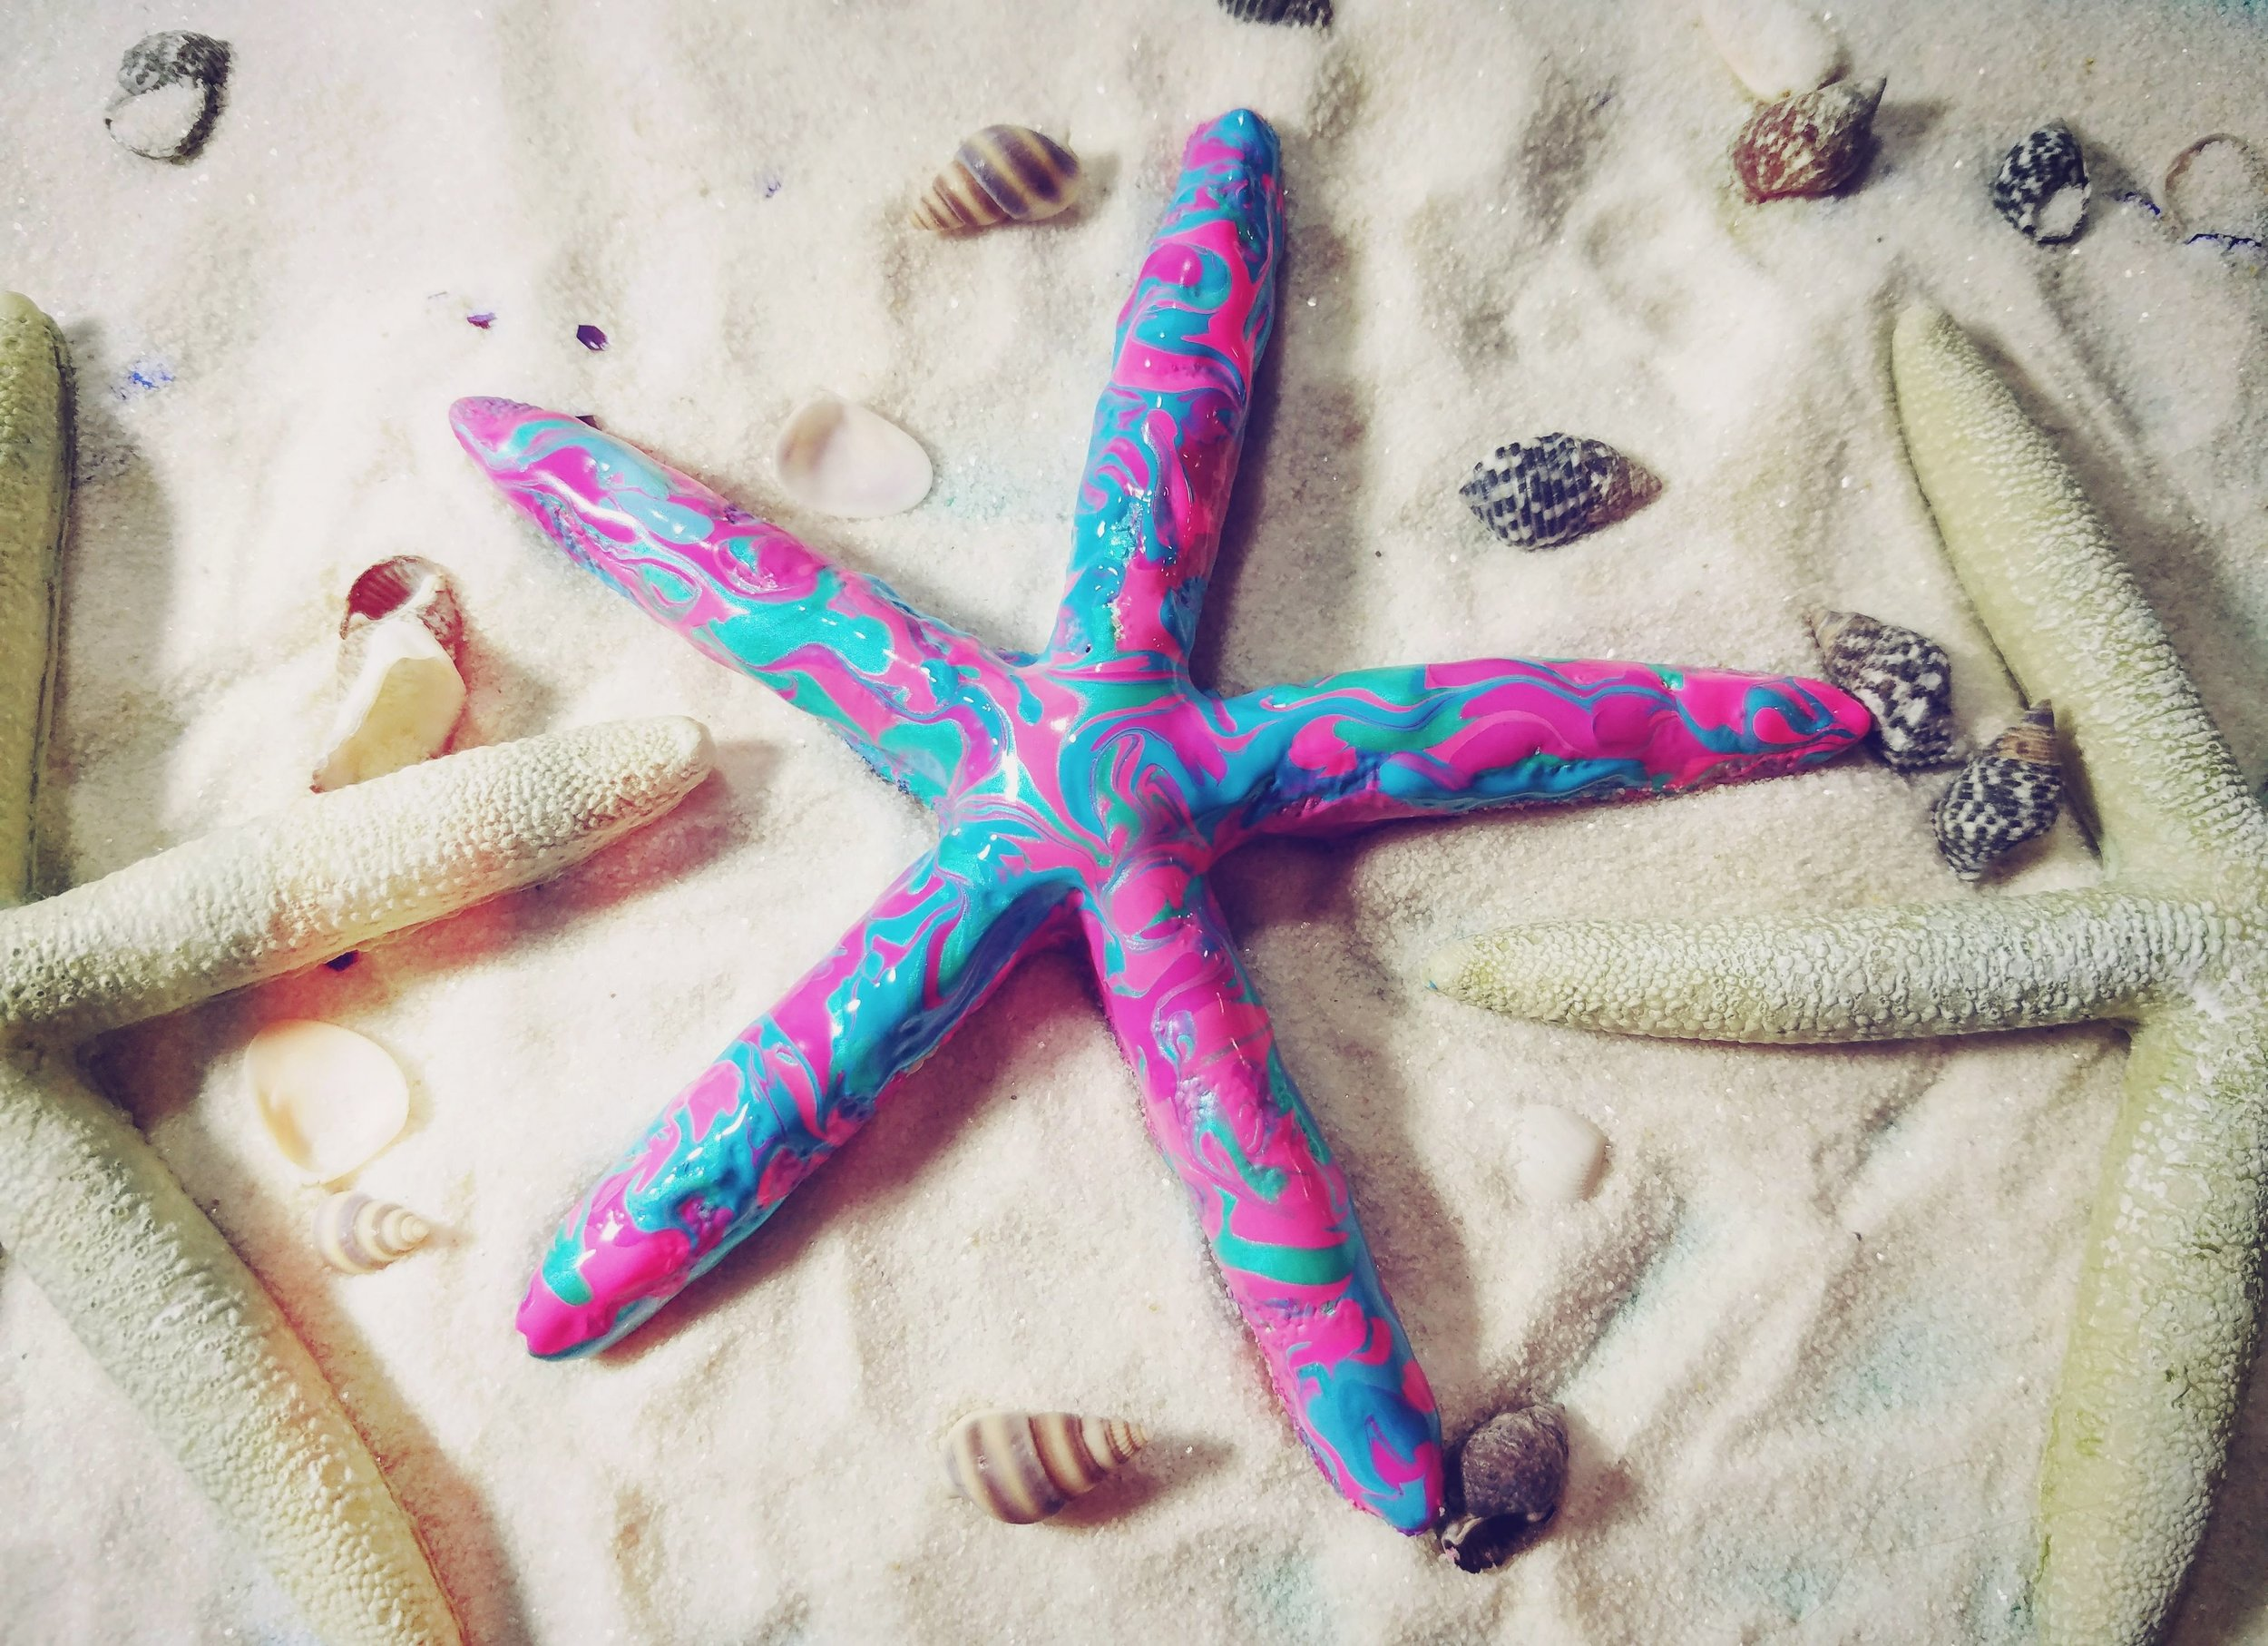 This starfish needs sunscreen.